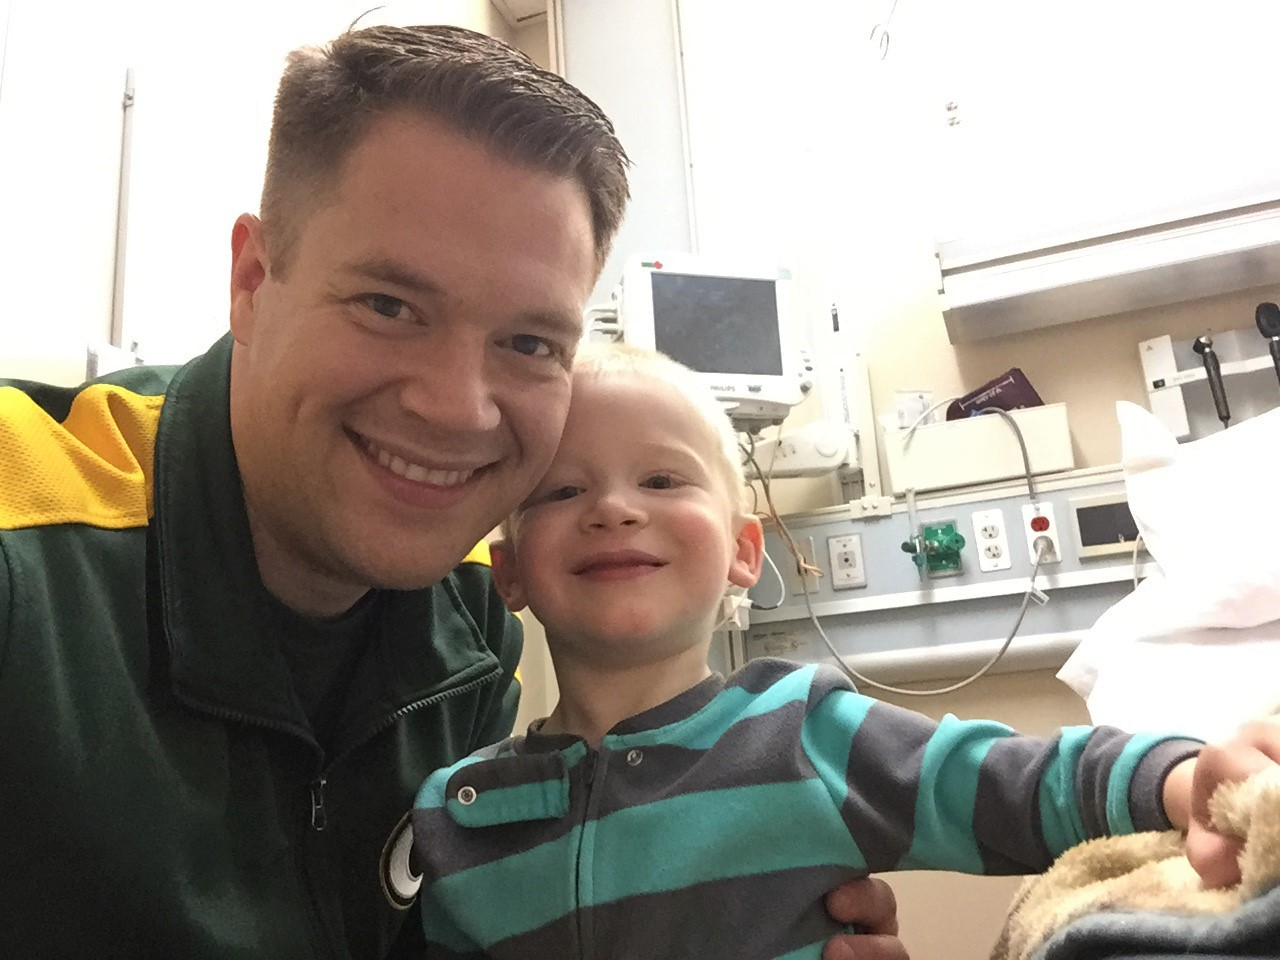 How Liberty Helped My 4-Year-Old Son in a Medical Emergency